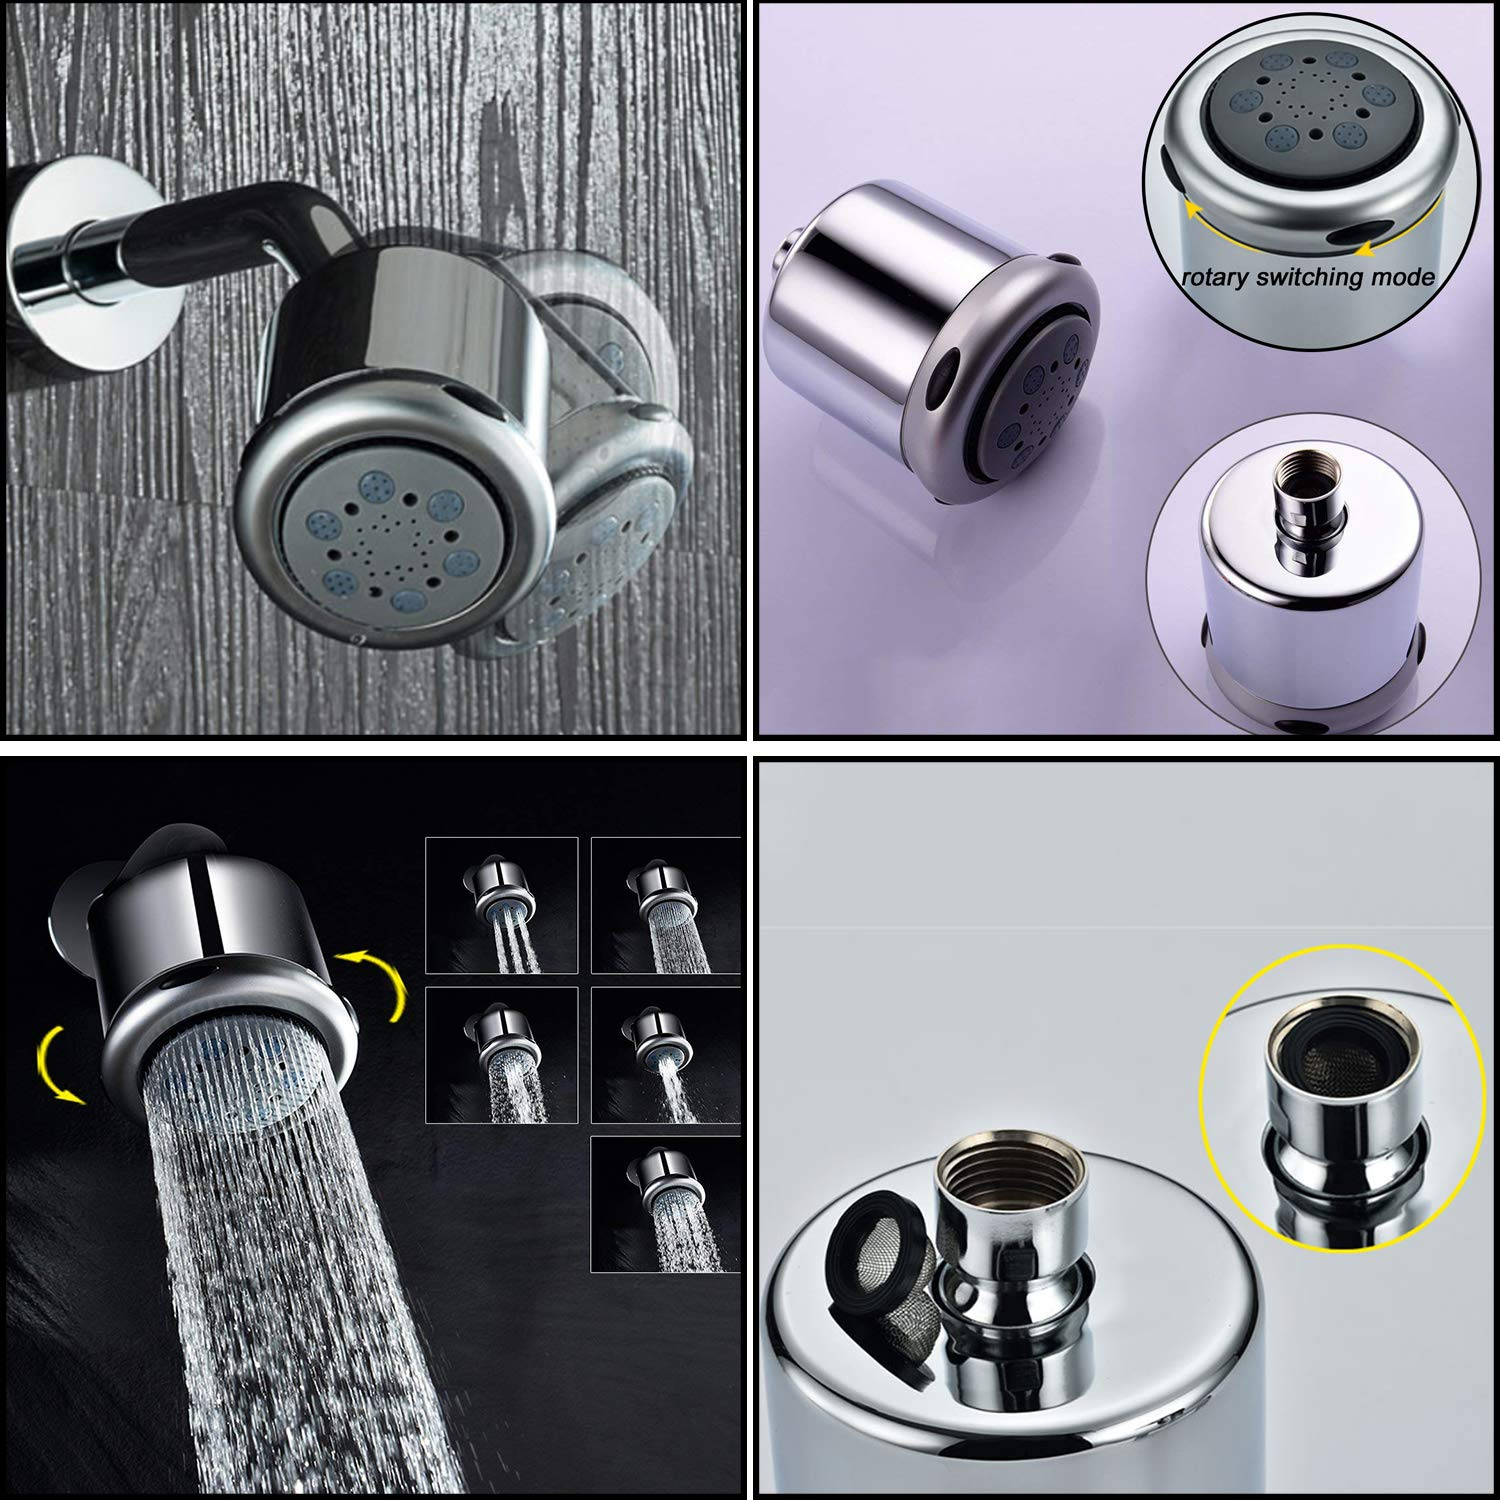 Wall Mounted Shower System Rain Shower Head /& Handheld shower head,Solid Brass Single Handle Shower Mixer Valve Control,Chrome Finished OLEAH Shower Combo Set with Tub Spout Faucet